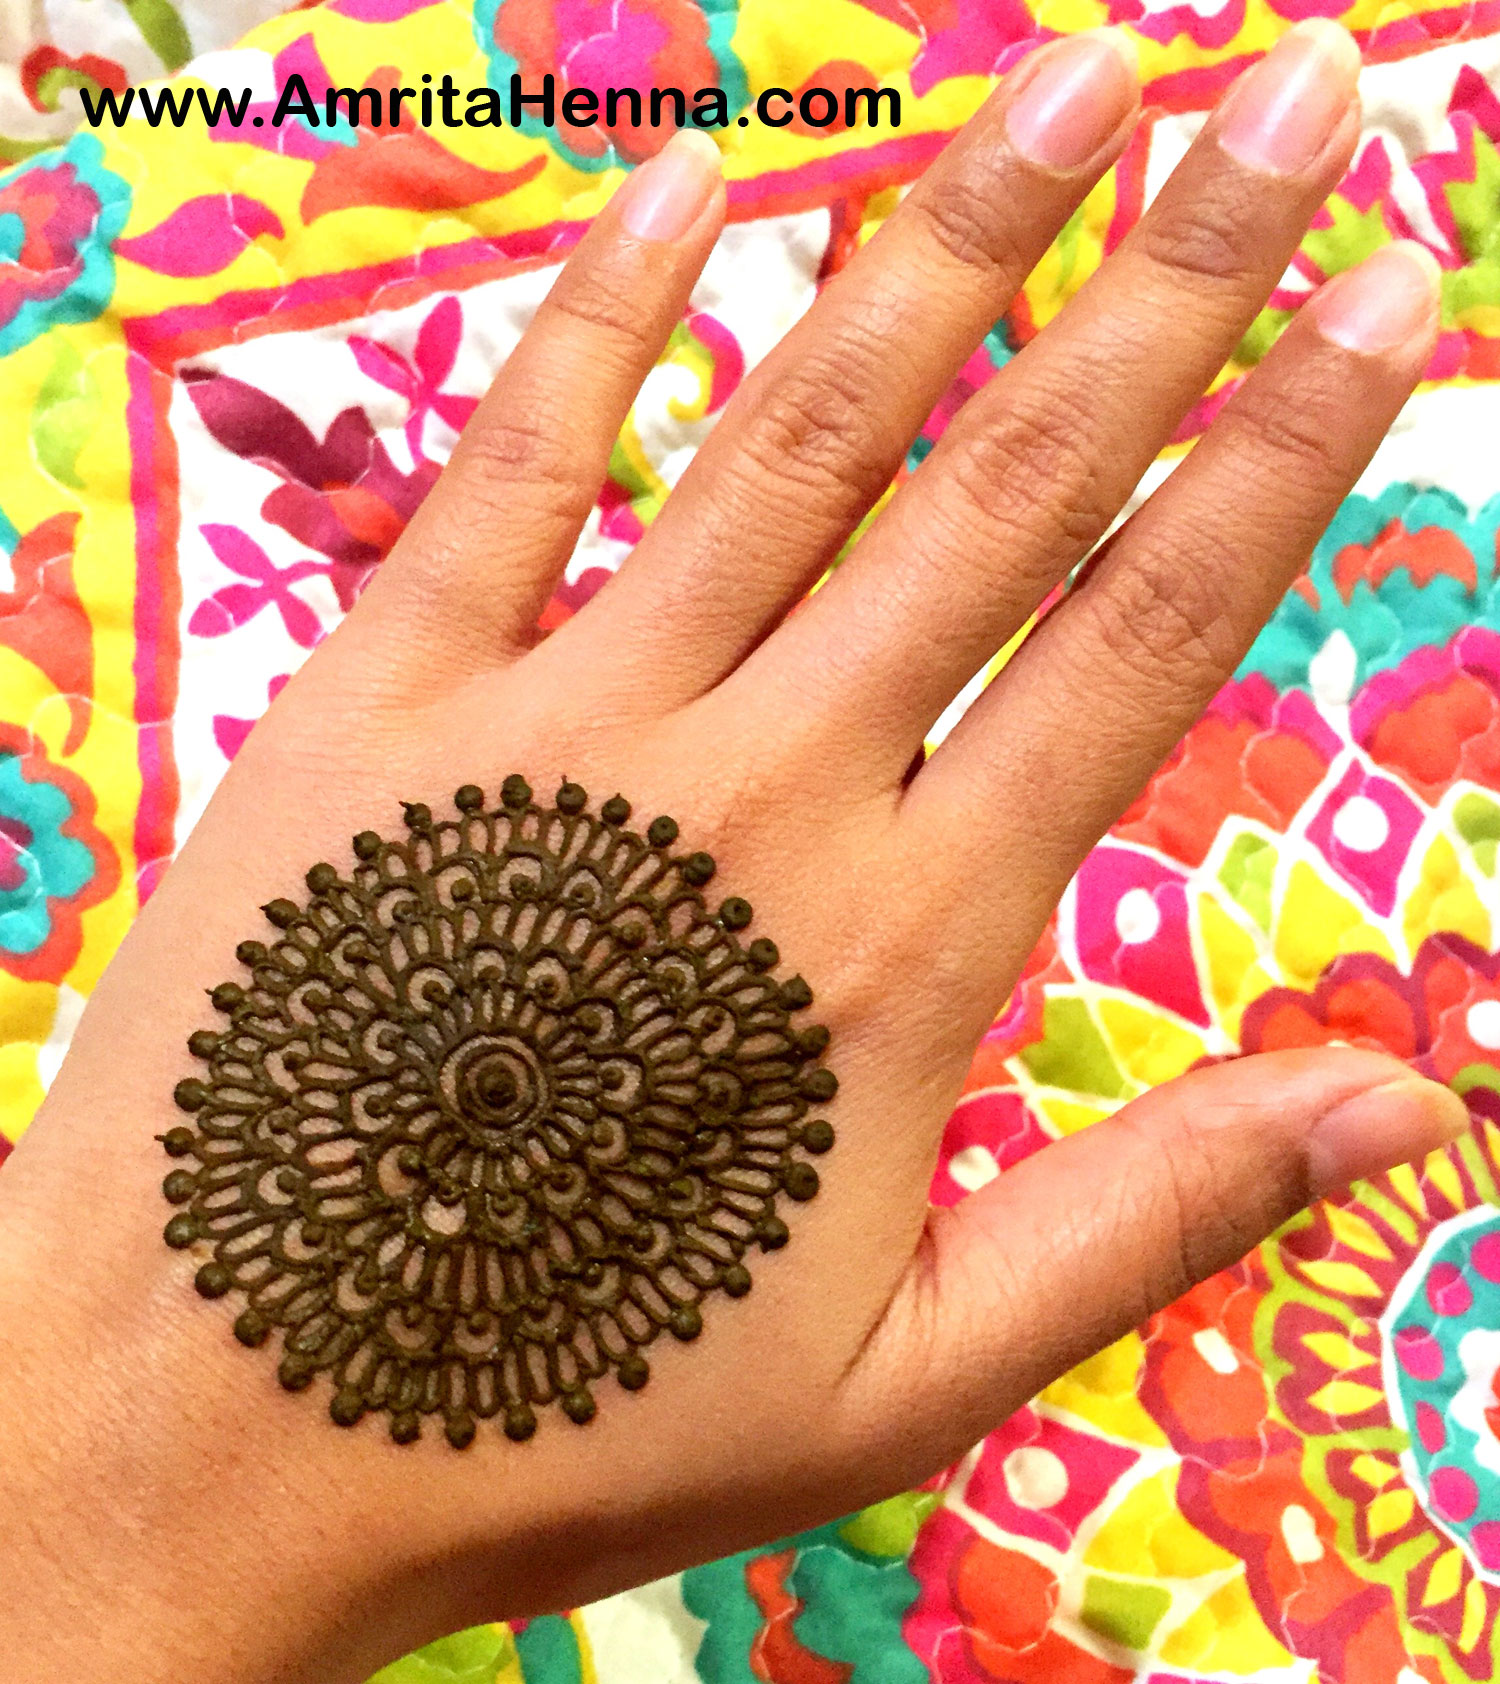 Top 10 Mandala Henna Designs - 10 Best Round Mehndi Designs Mandala Mehendi - Top 10 Most Popular Circular Mehndi Henna Designs - Top 10 Round Mandala Henna Designs - Top 10 Easy To Do Unique Mandala Mehendi Designs for you - Top 10 Mandala Henna Tattoo - Best Mandala Henna Tattoo